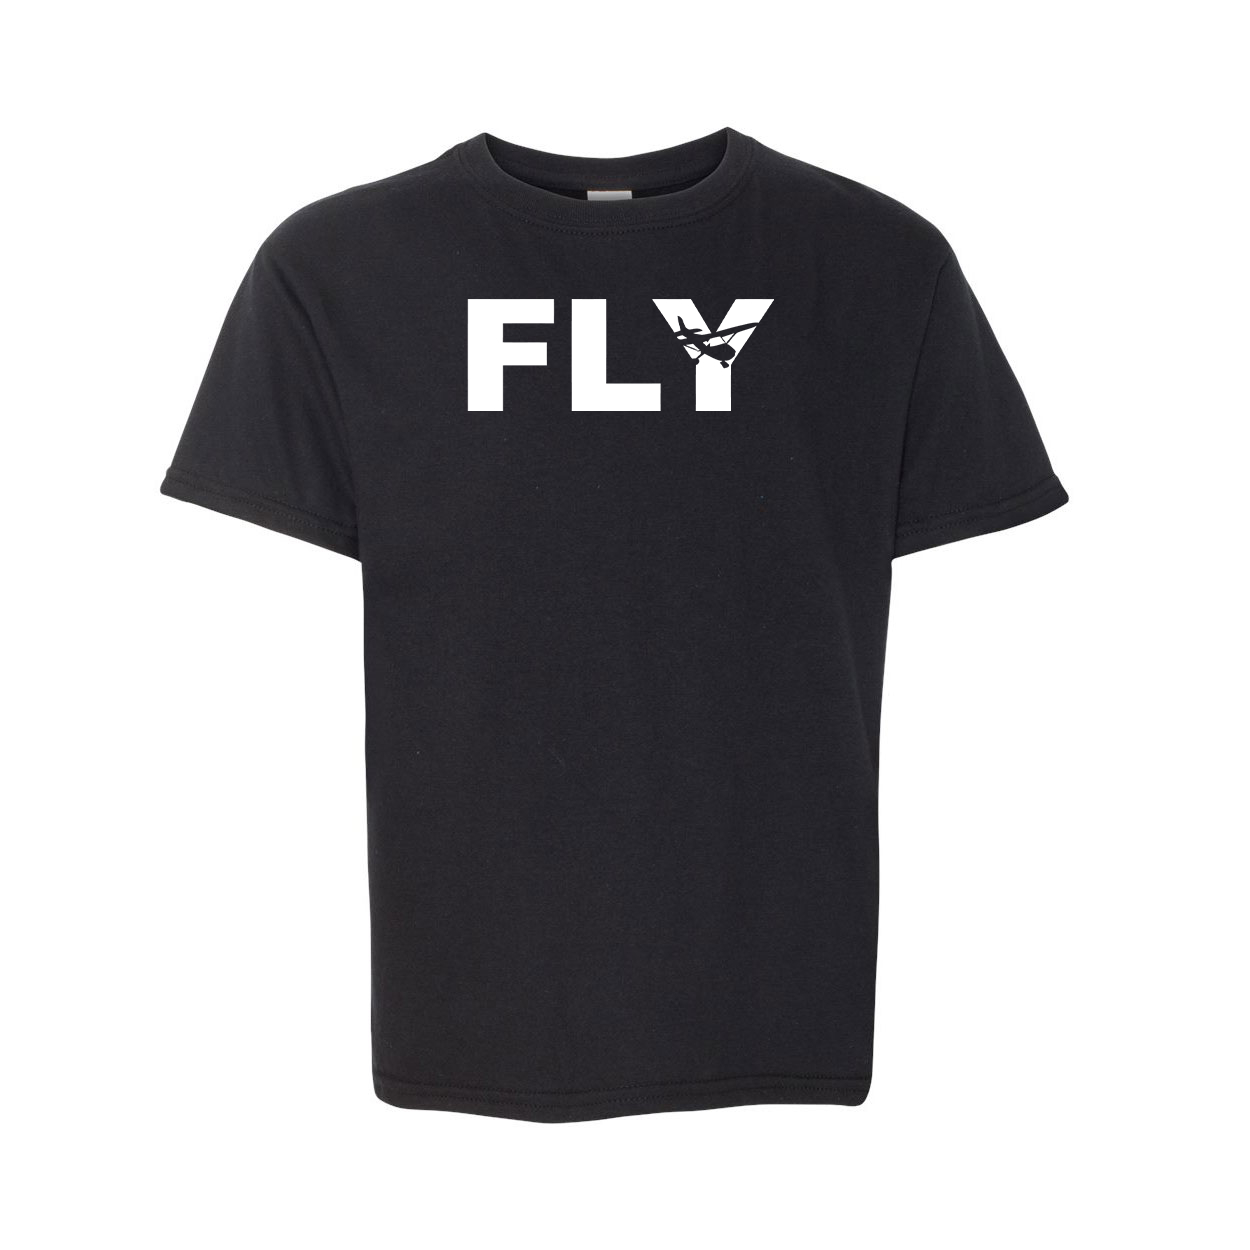 Fly Airplane Logo Classic Youth T-Shirt Black (White Logo)